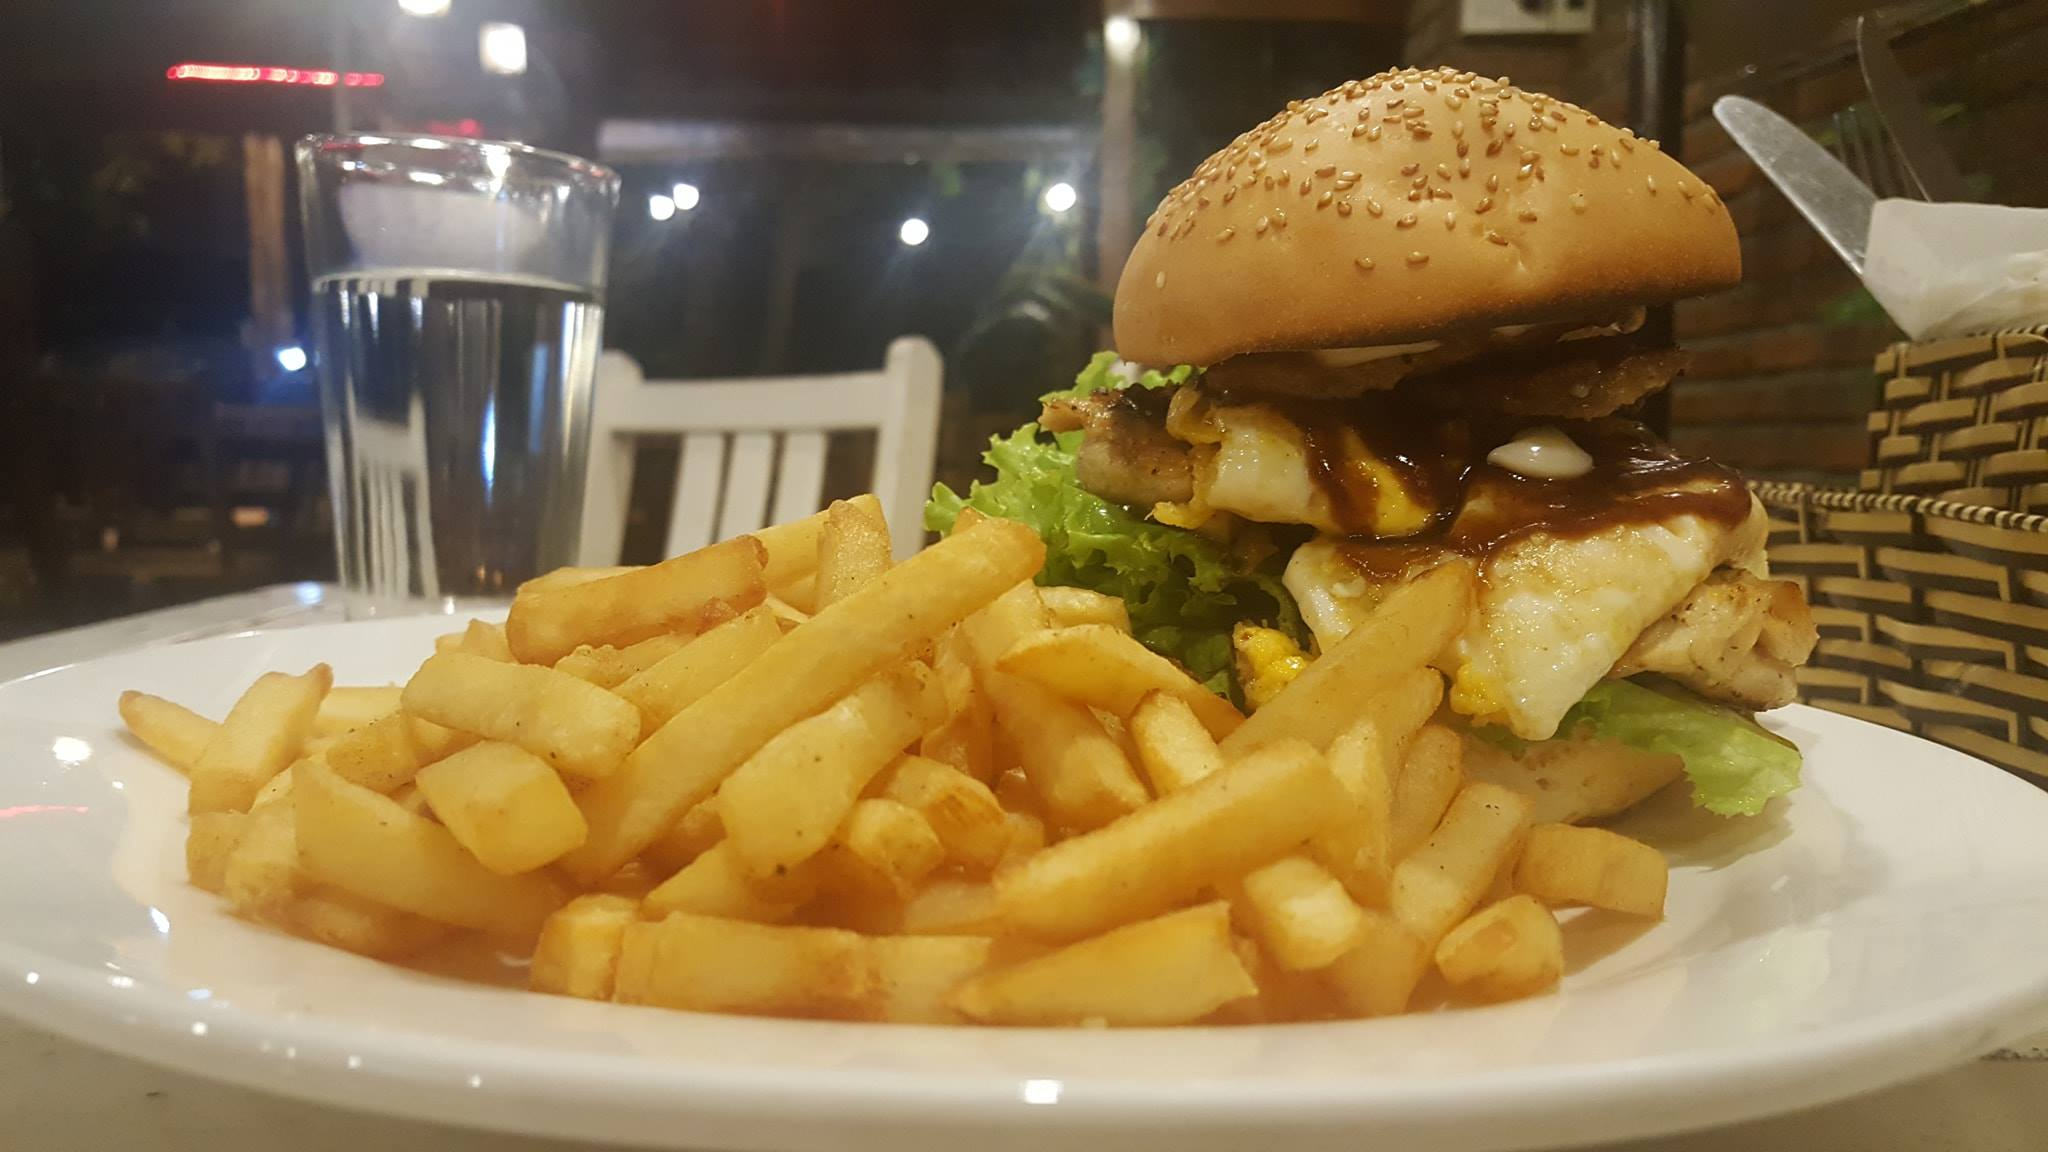 monster burger and Chips at Pizza Boom in Hoi An